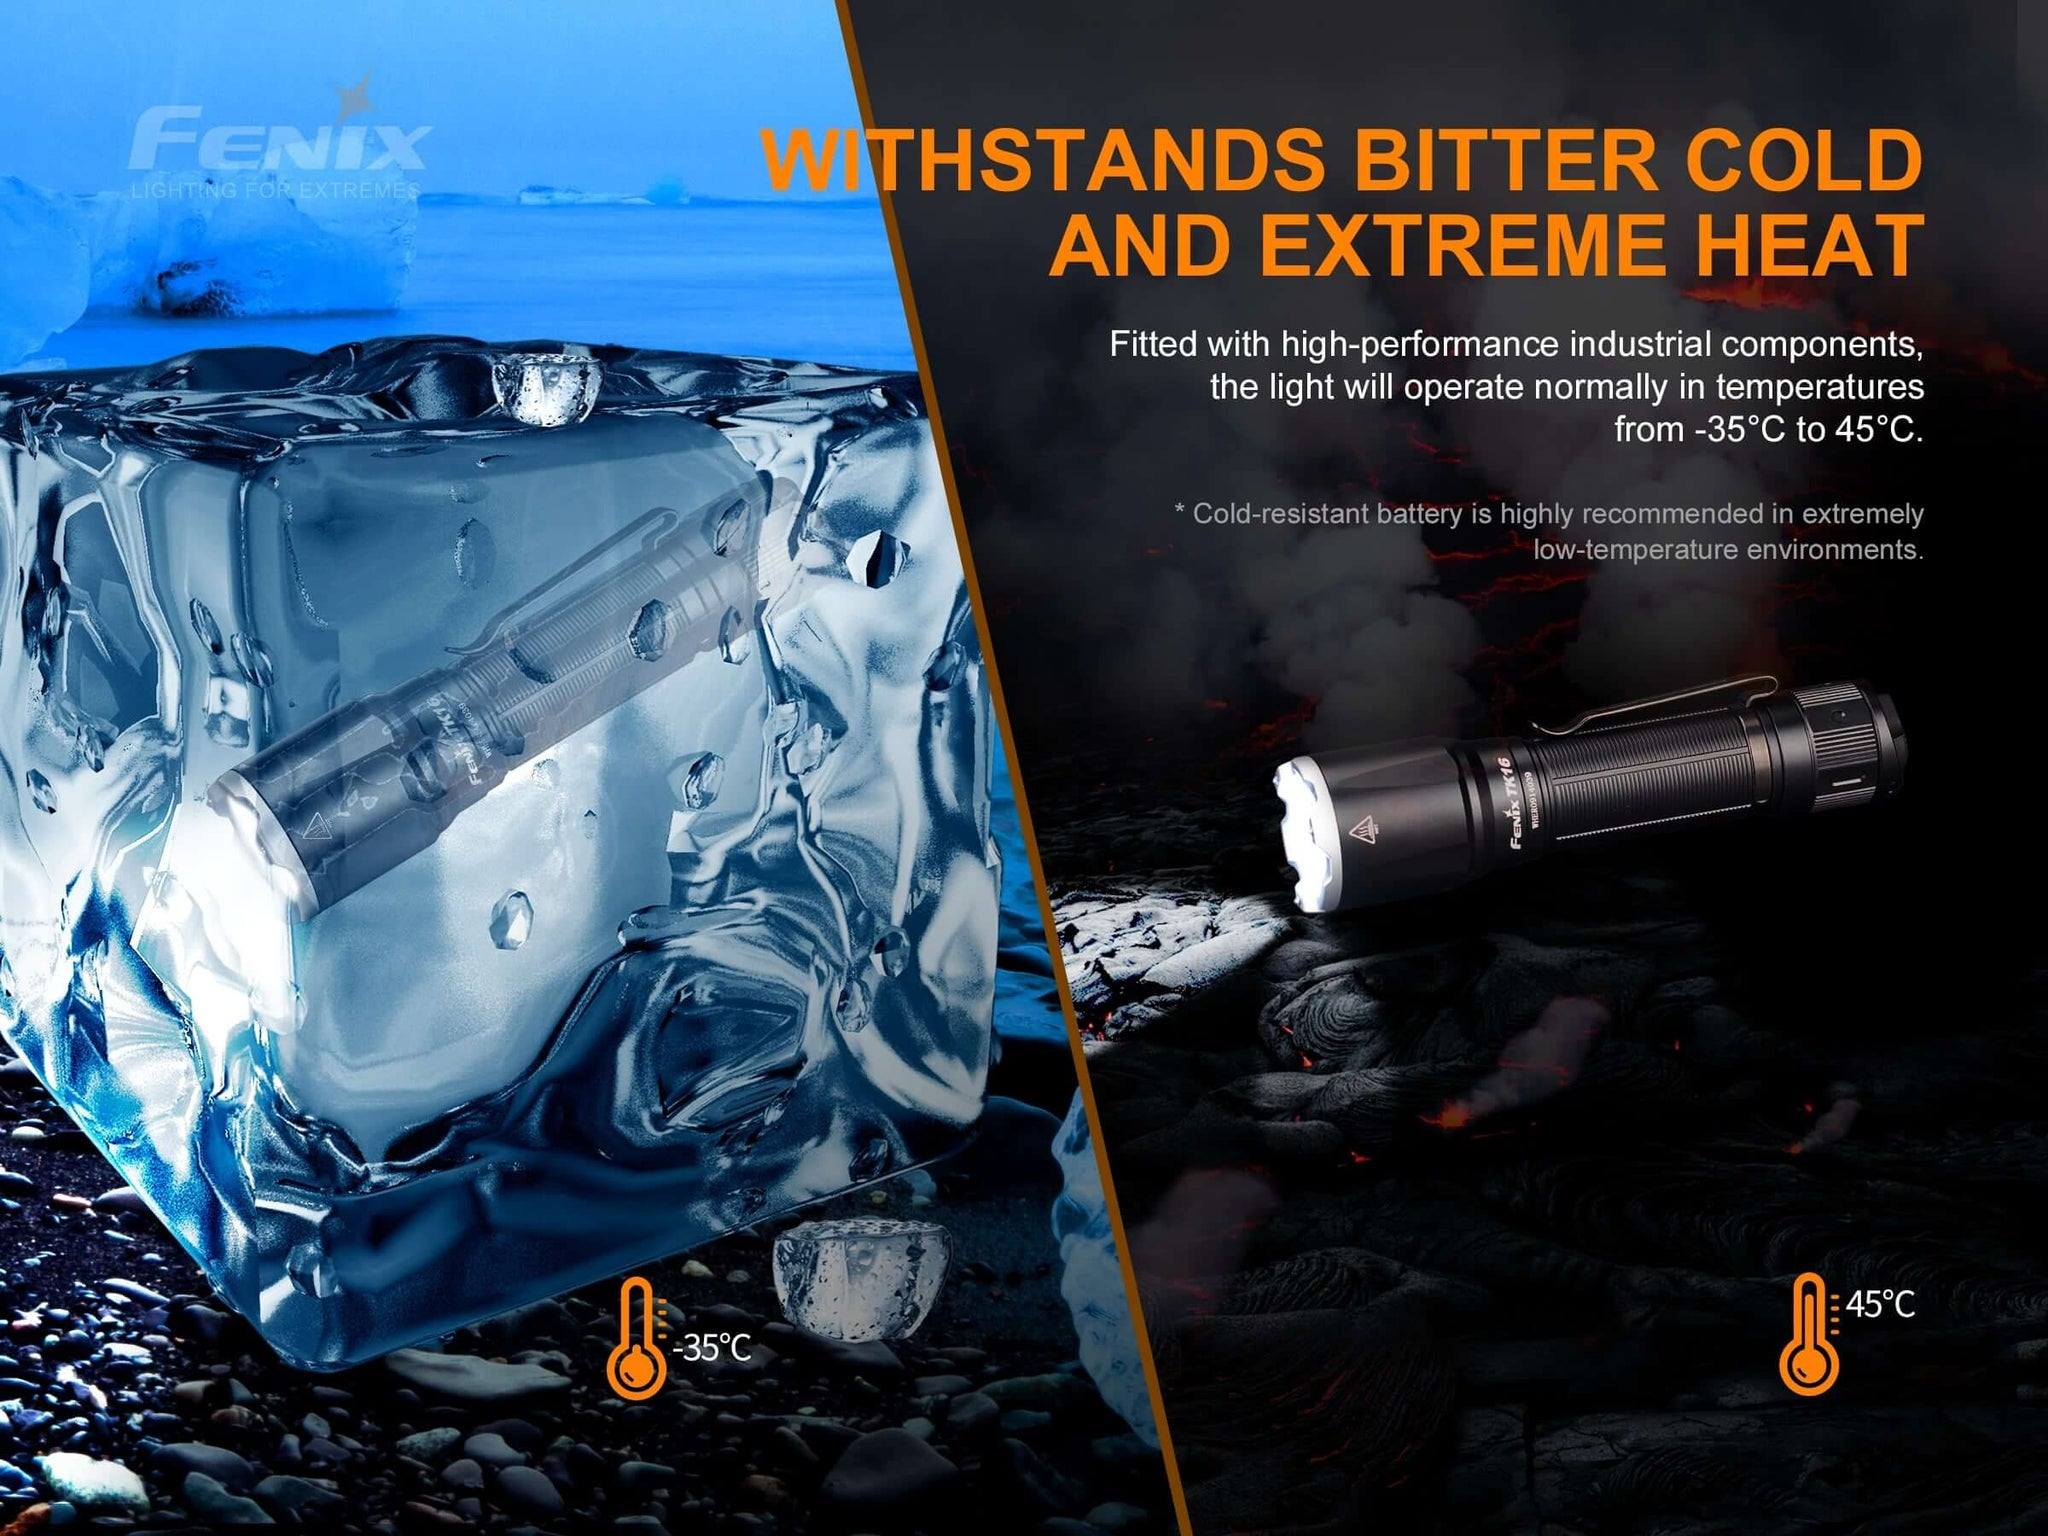 Buy Fenix TK16 V2 in India, 3100 Lumens Rechargeable LED Torch, High Performance Powerful Light, perfect for work outdoors EDC, search & rescue, aviation torch, industrial torch